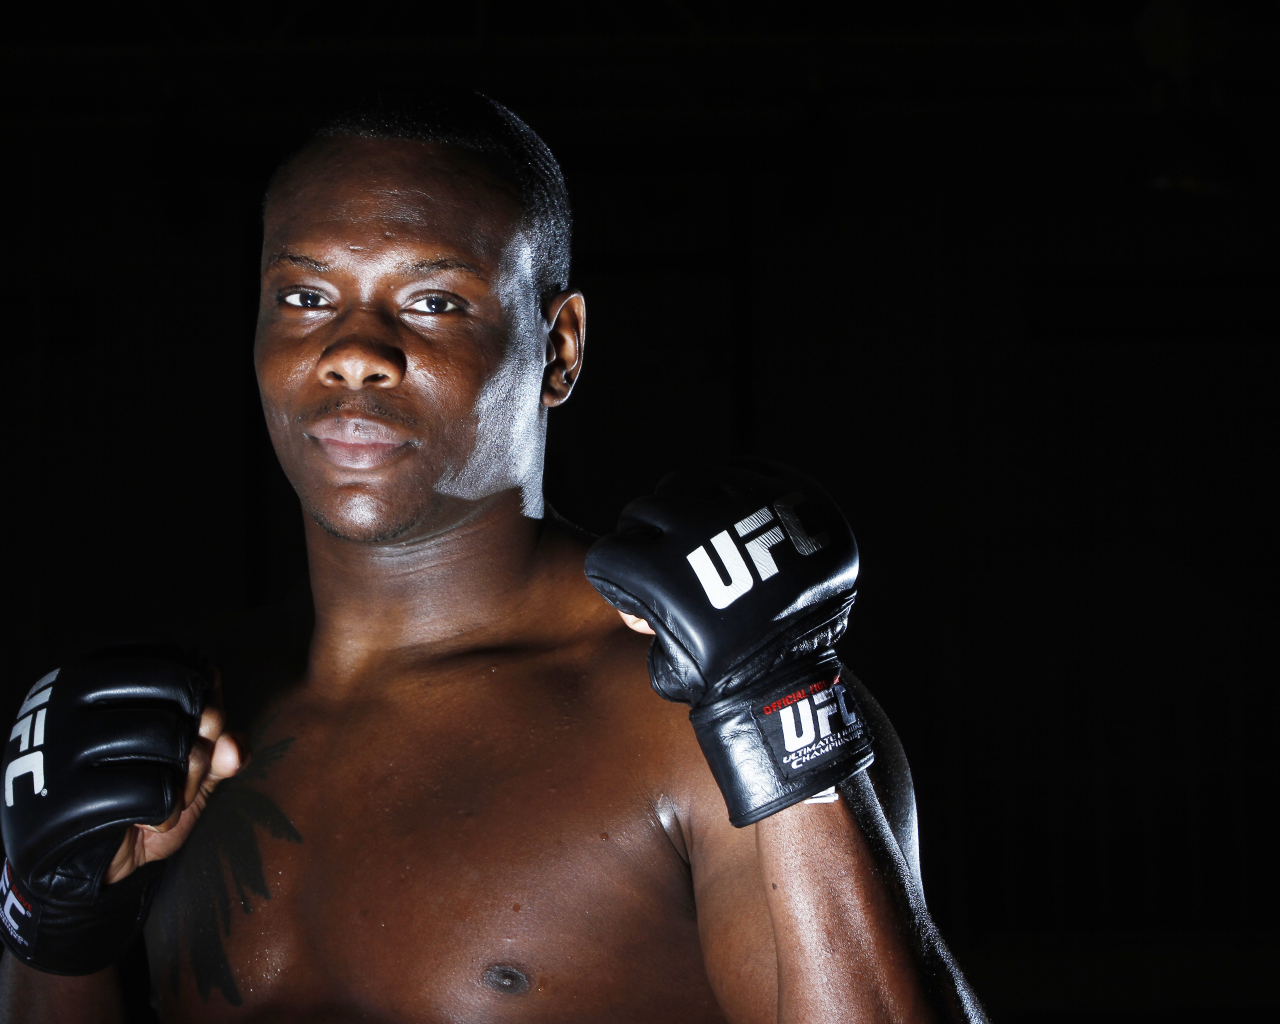 Ovince Saint Preux Ultimate Fighting Championship Fighter HD 4K 1280x1024